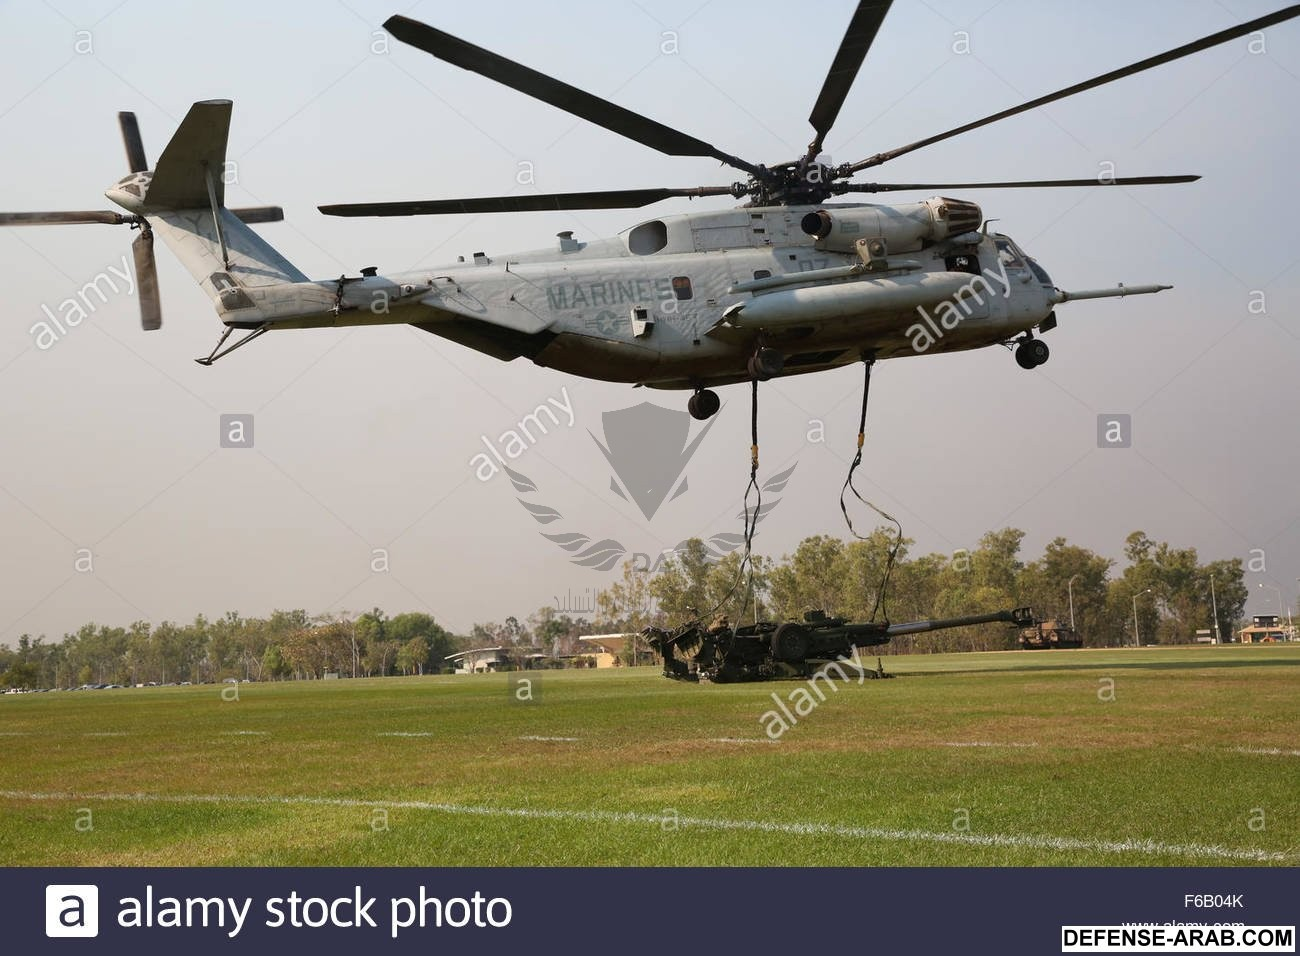 a-us-marine-corps-ch-53e-super-stallion-helicopter-with-marine-heavy-F6B04K.jpg